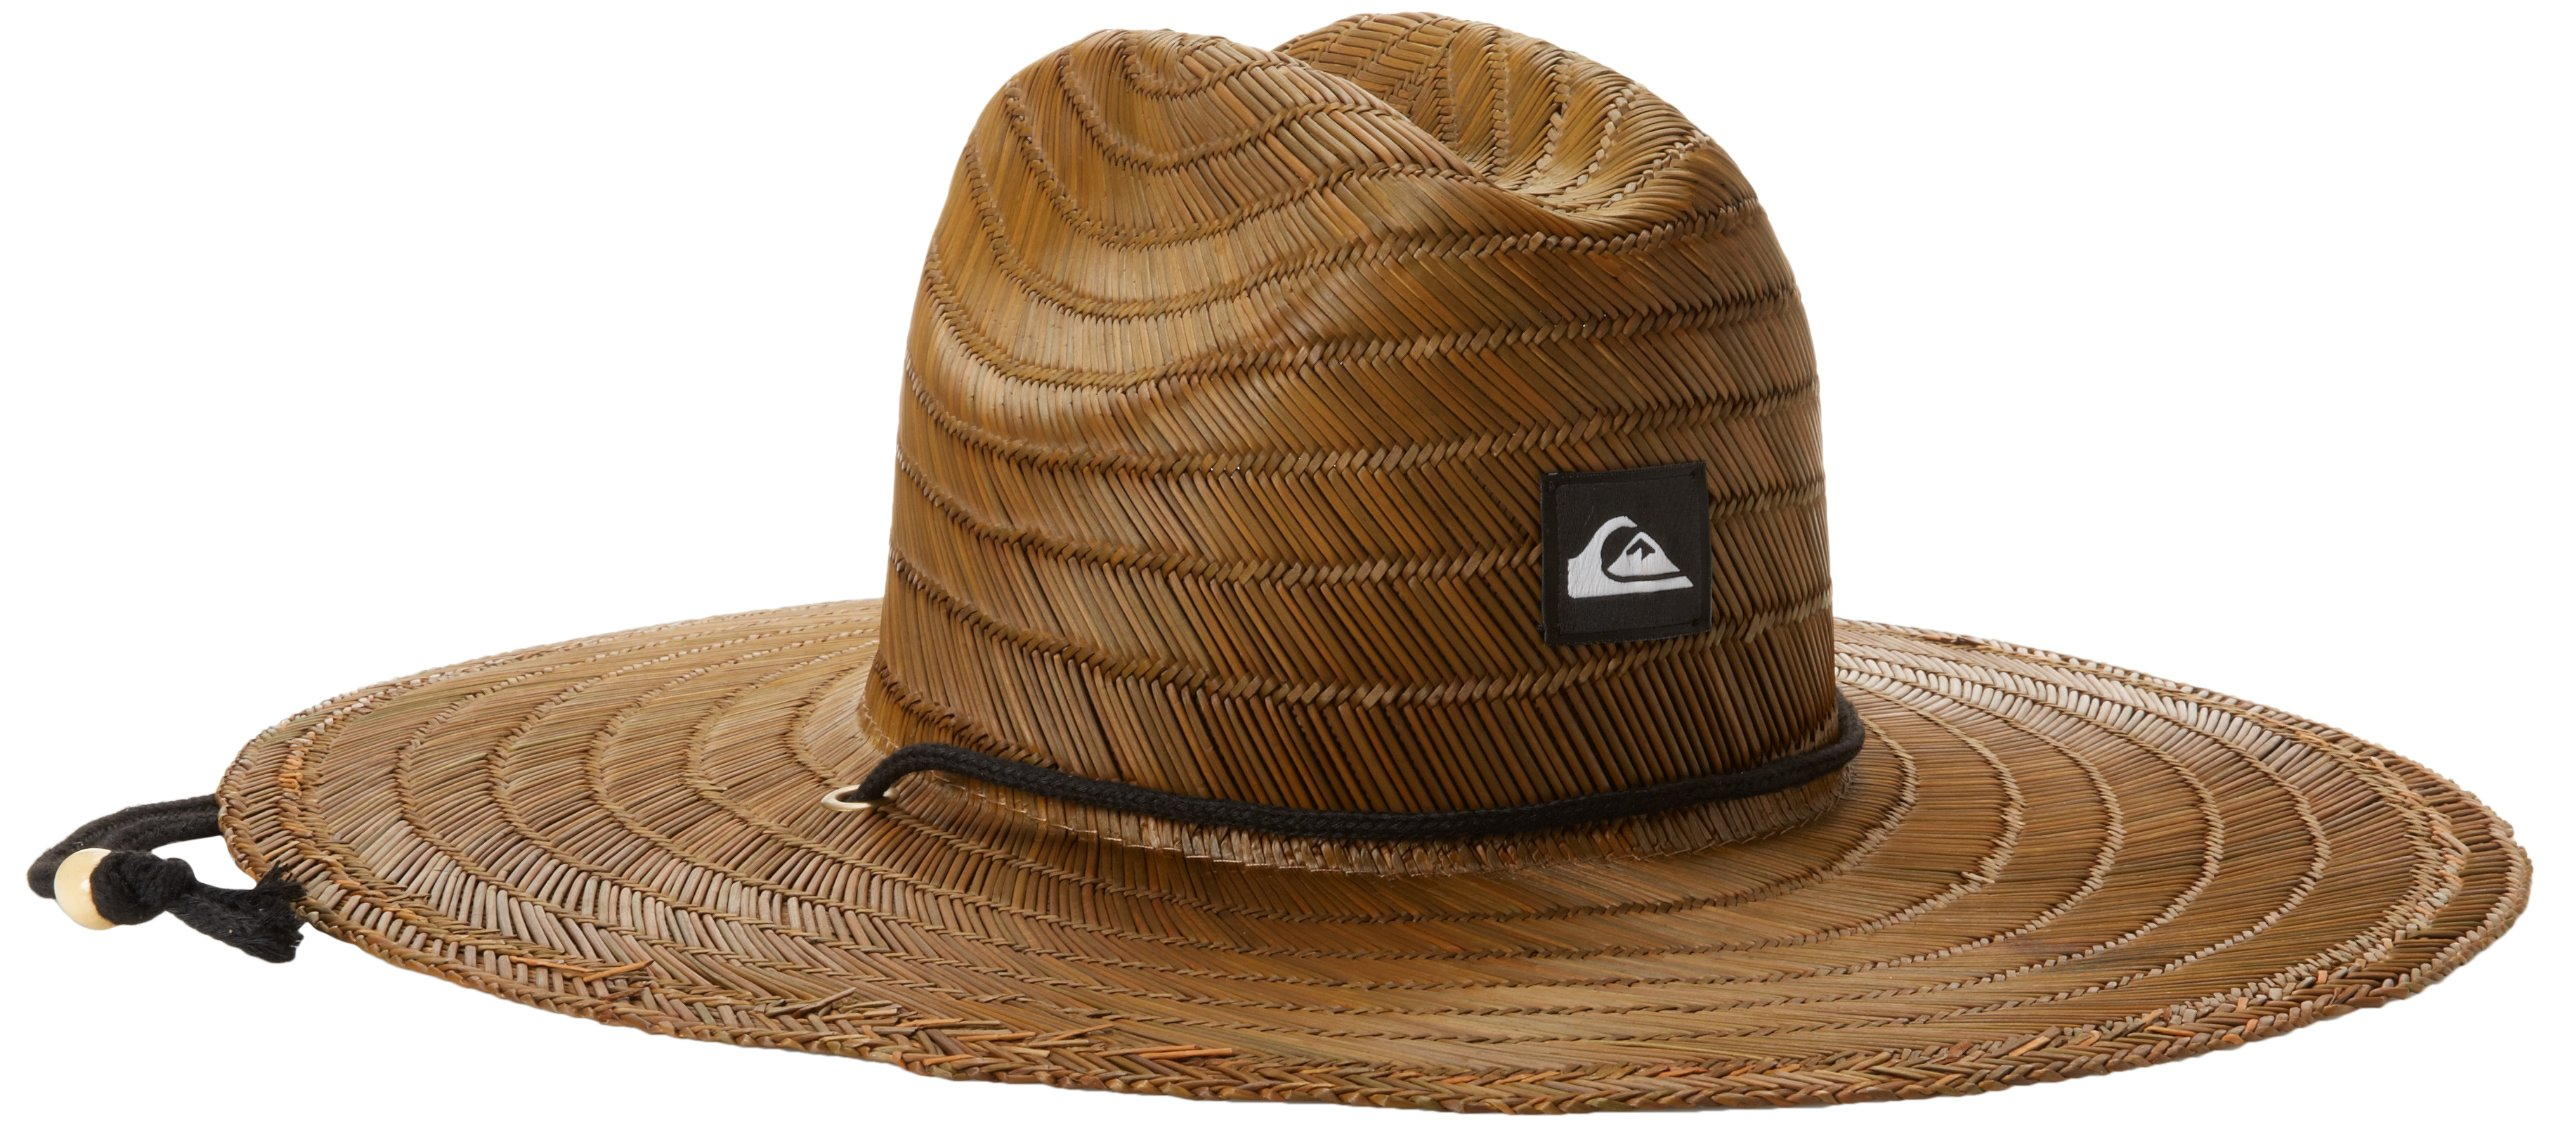 Details about Quiksilver Men s Pierside Straw Sun Hat Dark Brown  Large X-Large beffe733d179